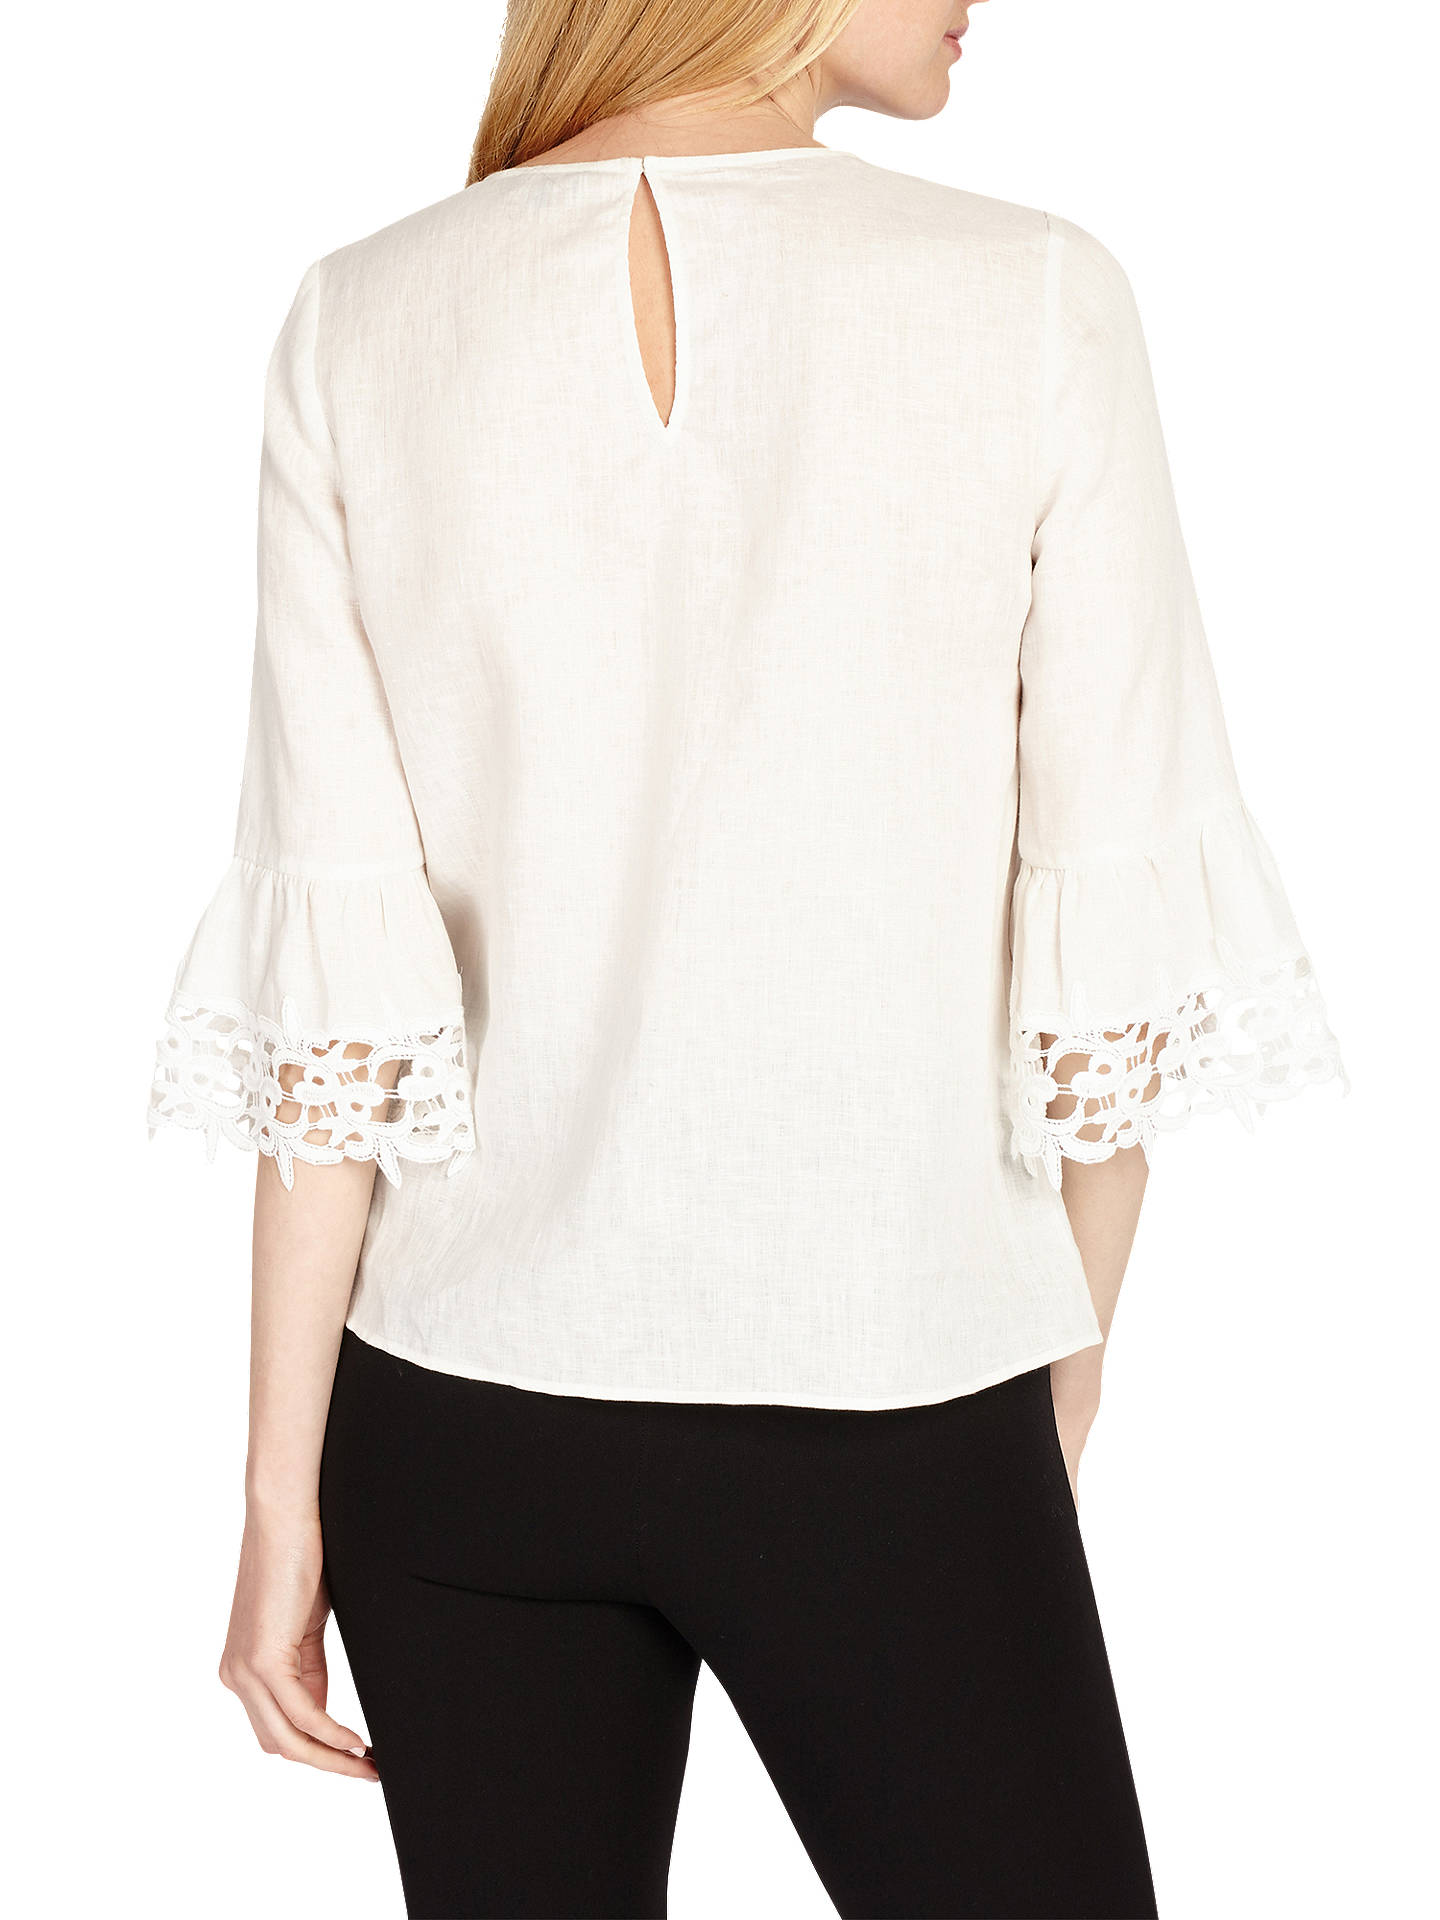 0e38b3316e8 ... Buy Phase Eight Tabbie Lace Cuff Blouse, Ivory, 8 Online at  johnlewis.com ...